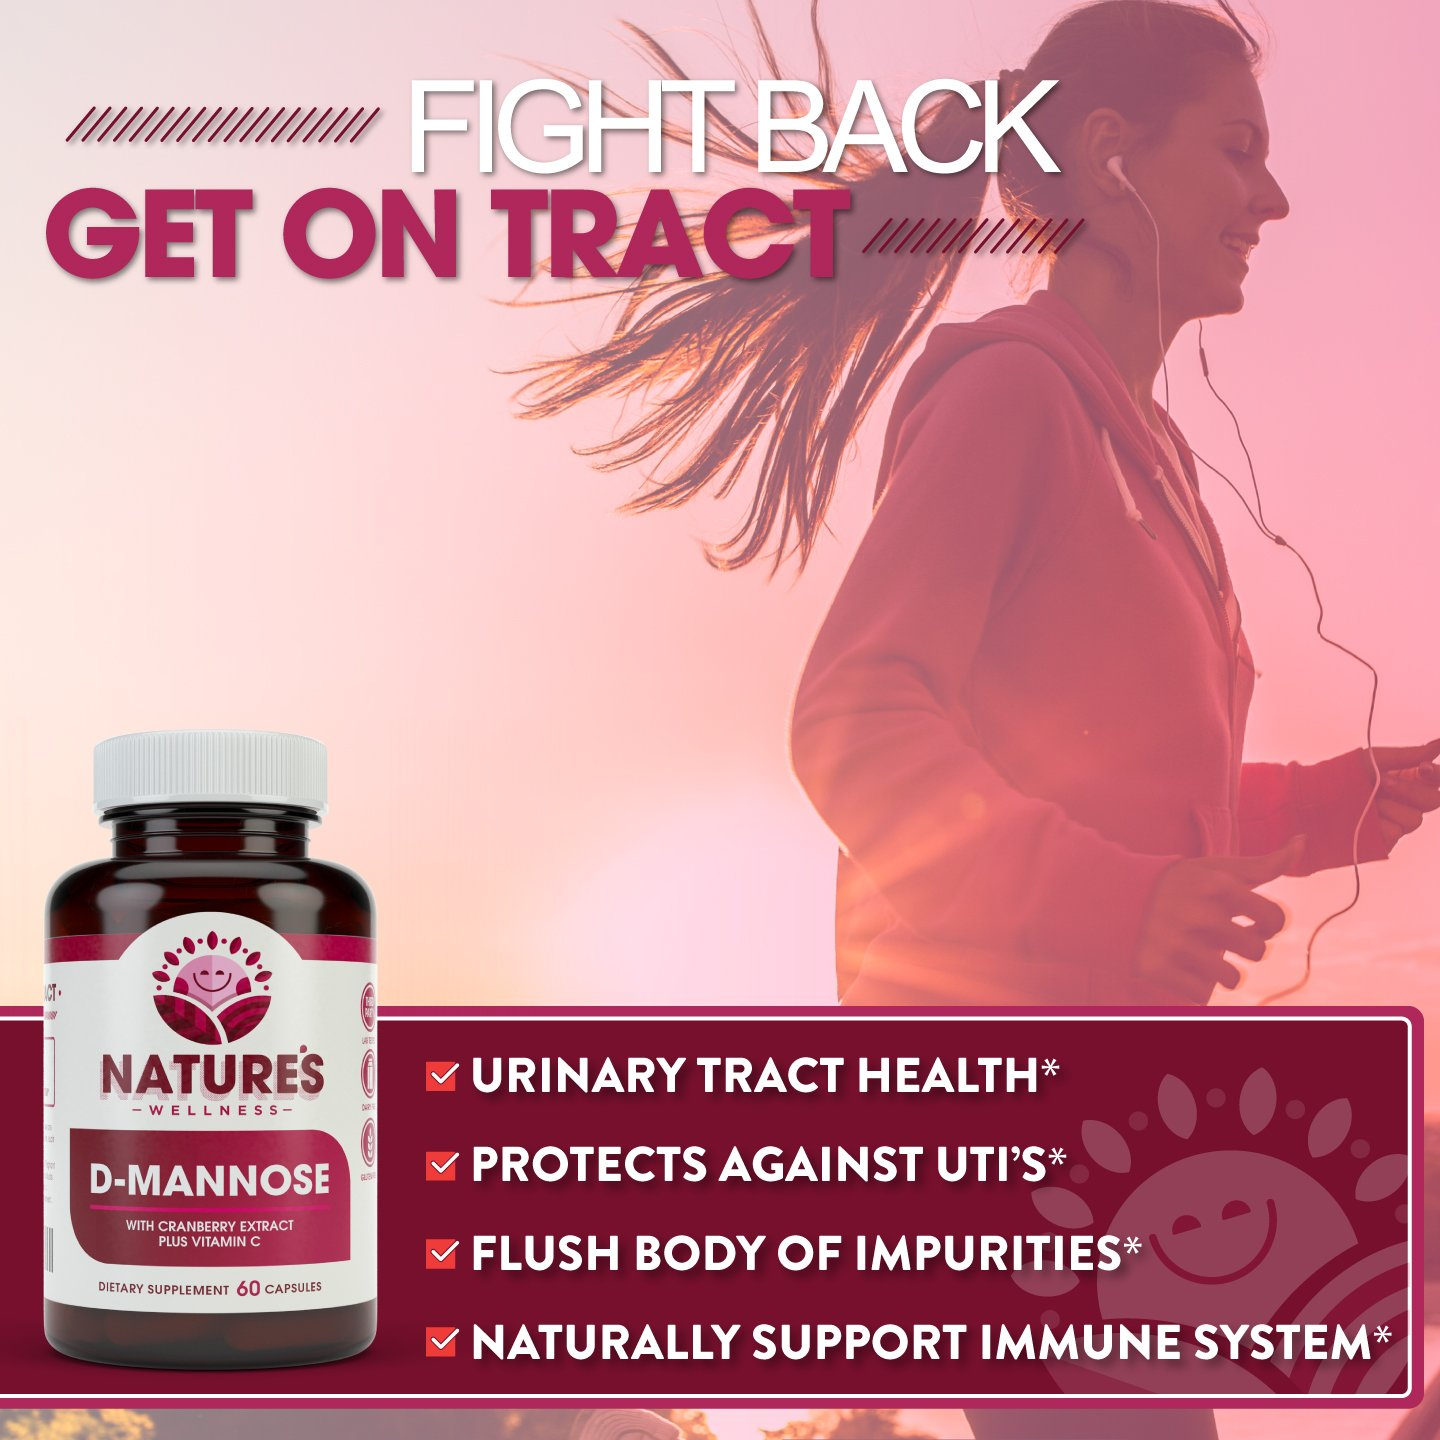 D-MANNOSE with Cranberry Extract Plus Vitamin C | Urinary Tract Health -  UTI Protection - Flush